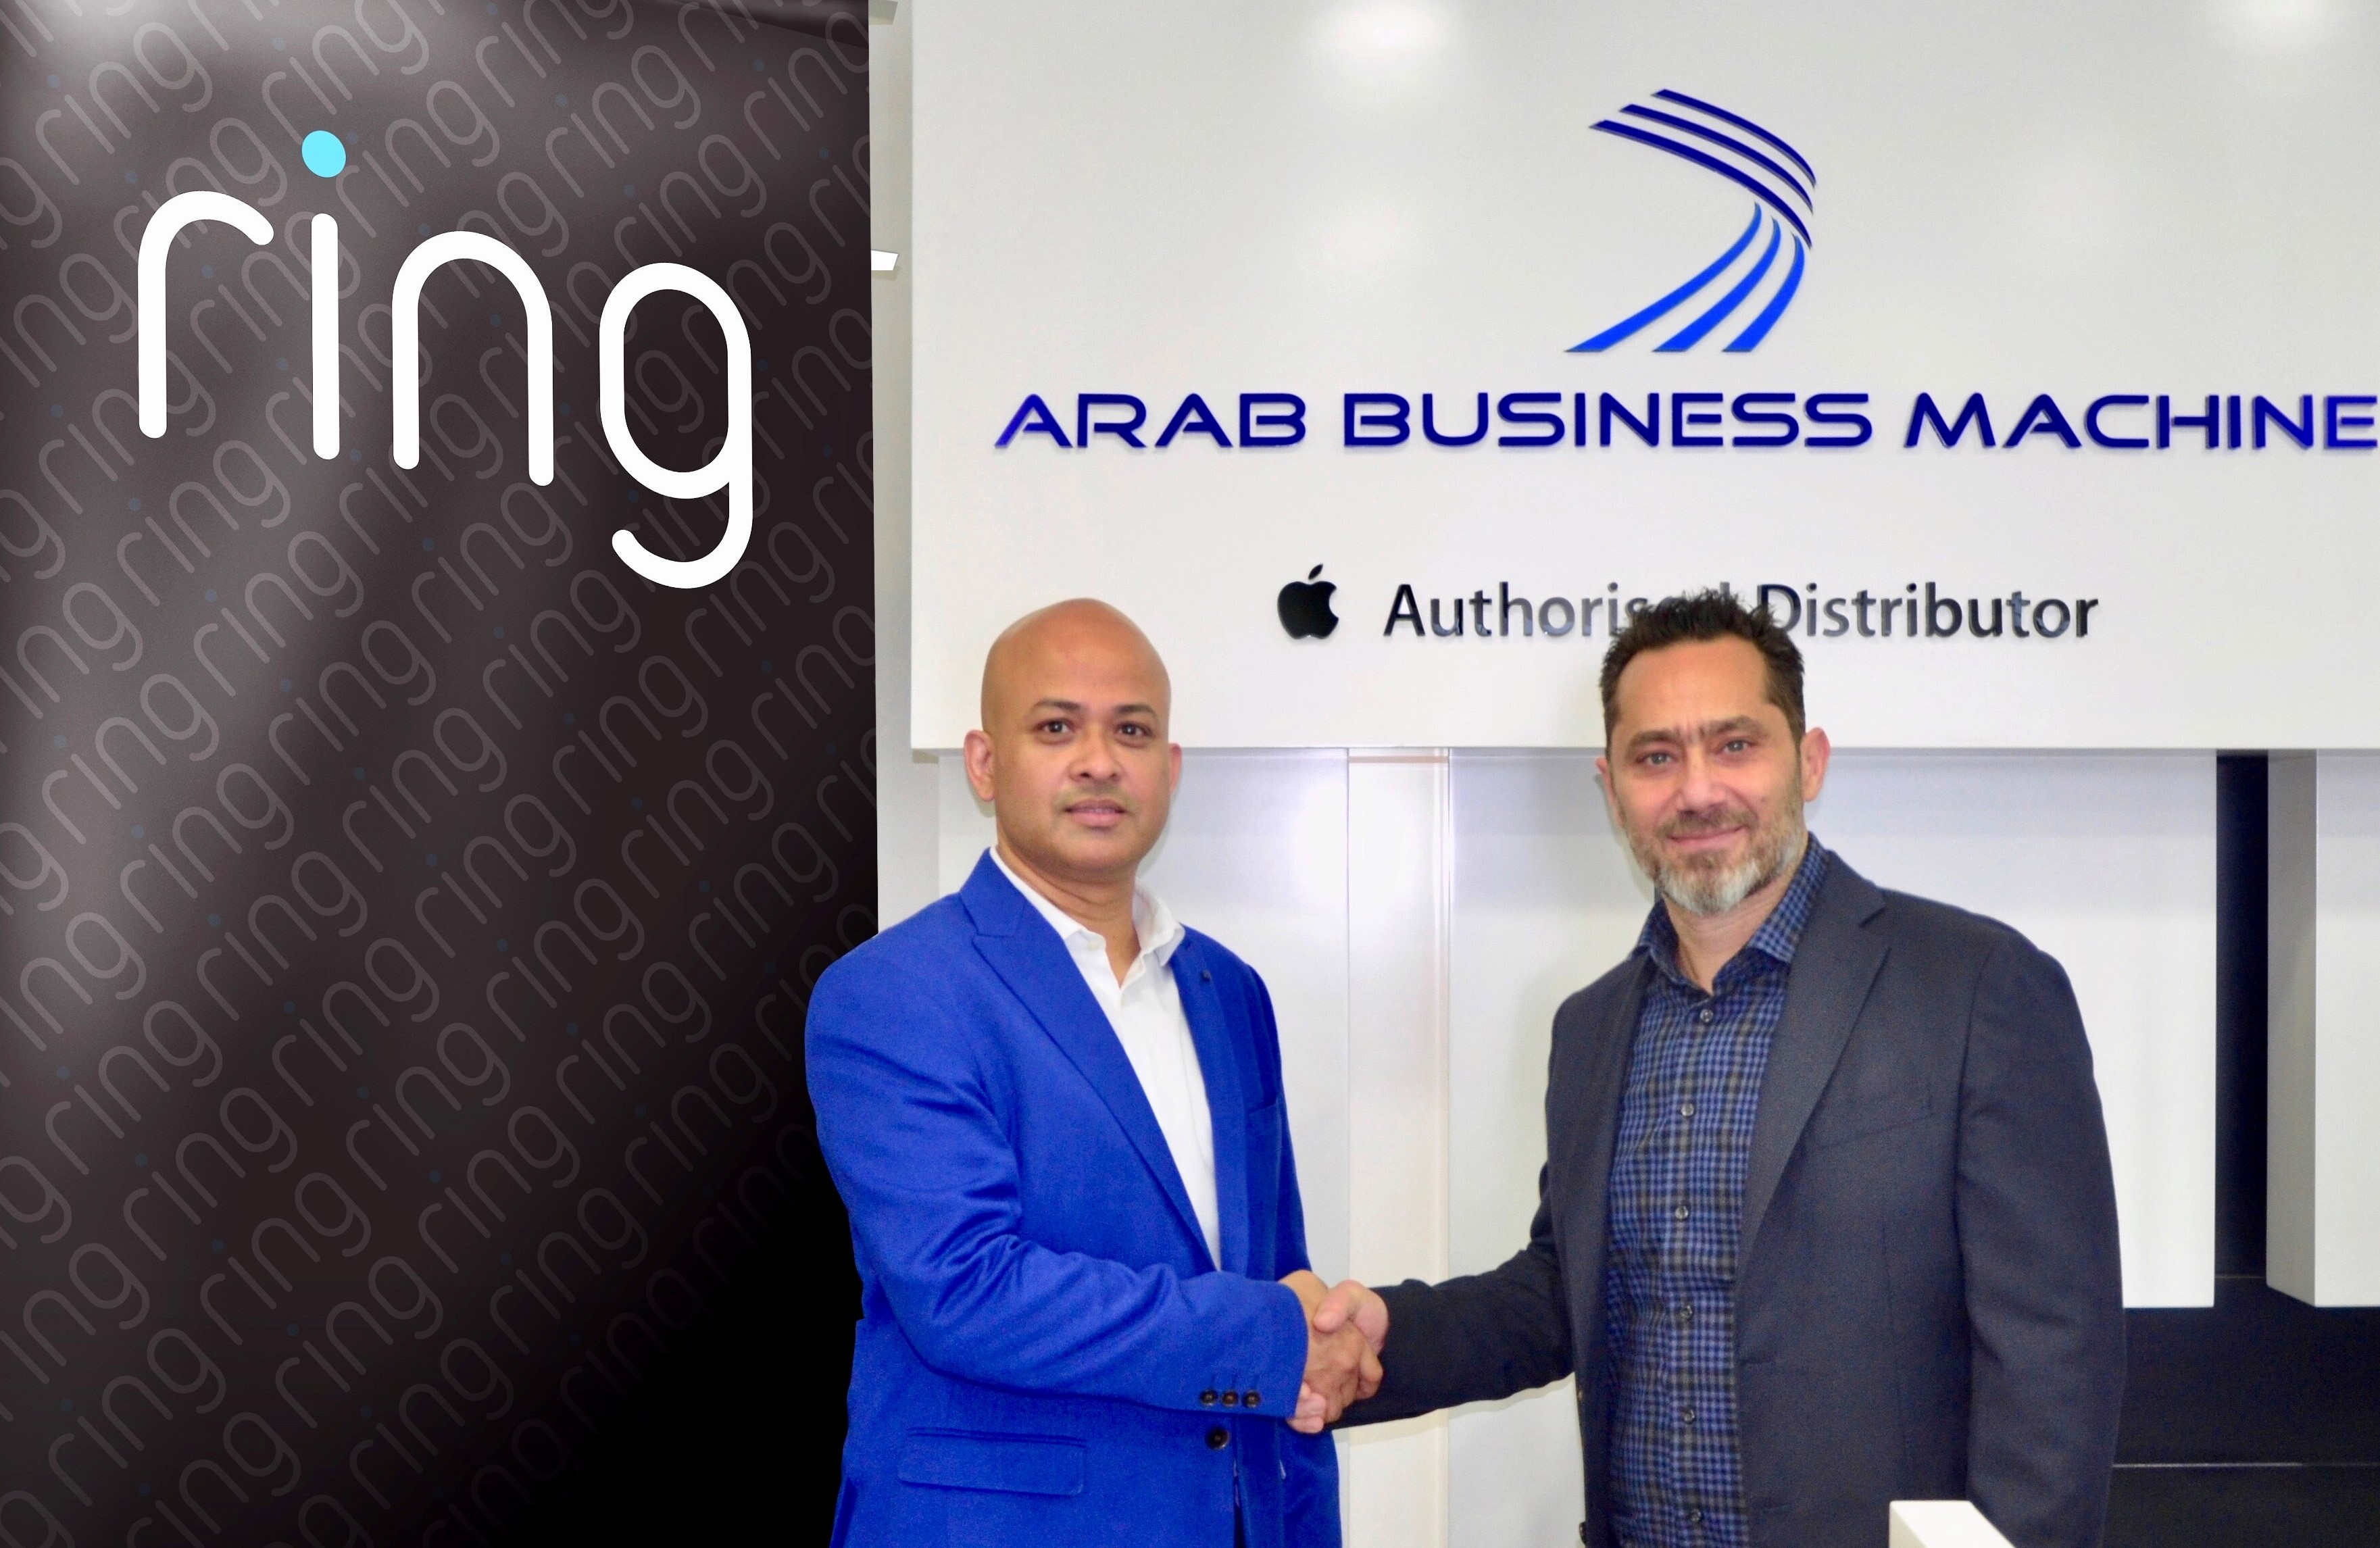 Ring and Arab Business Machine Sign New Partnership for  Middle East & North Africa